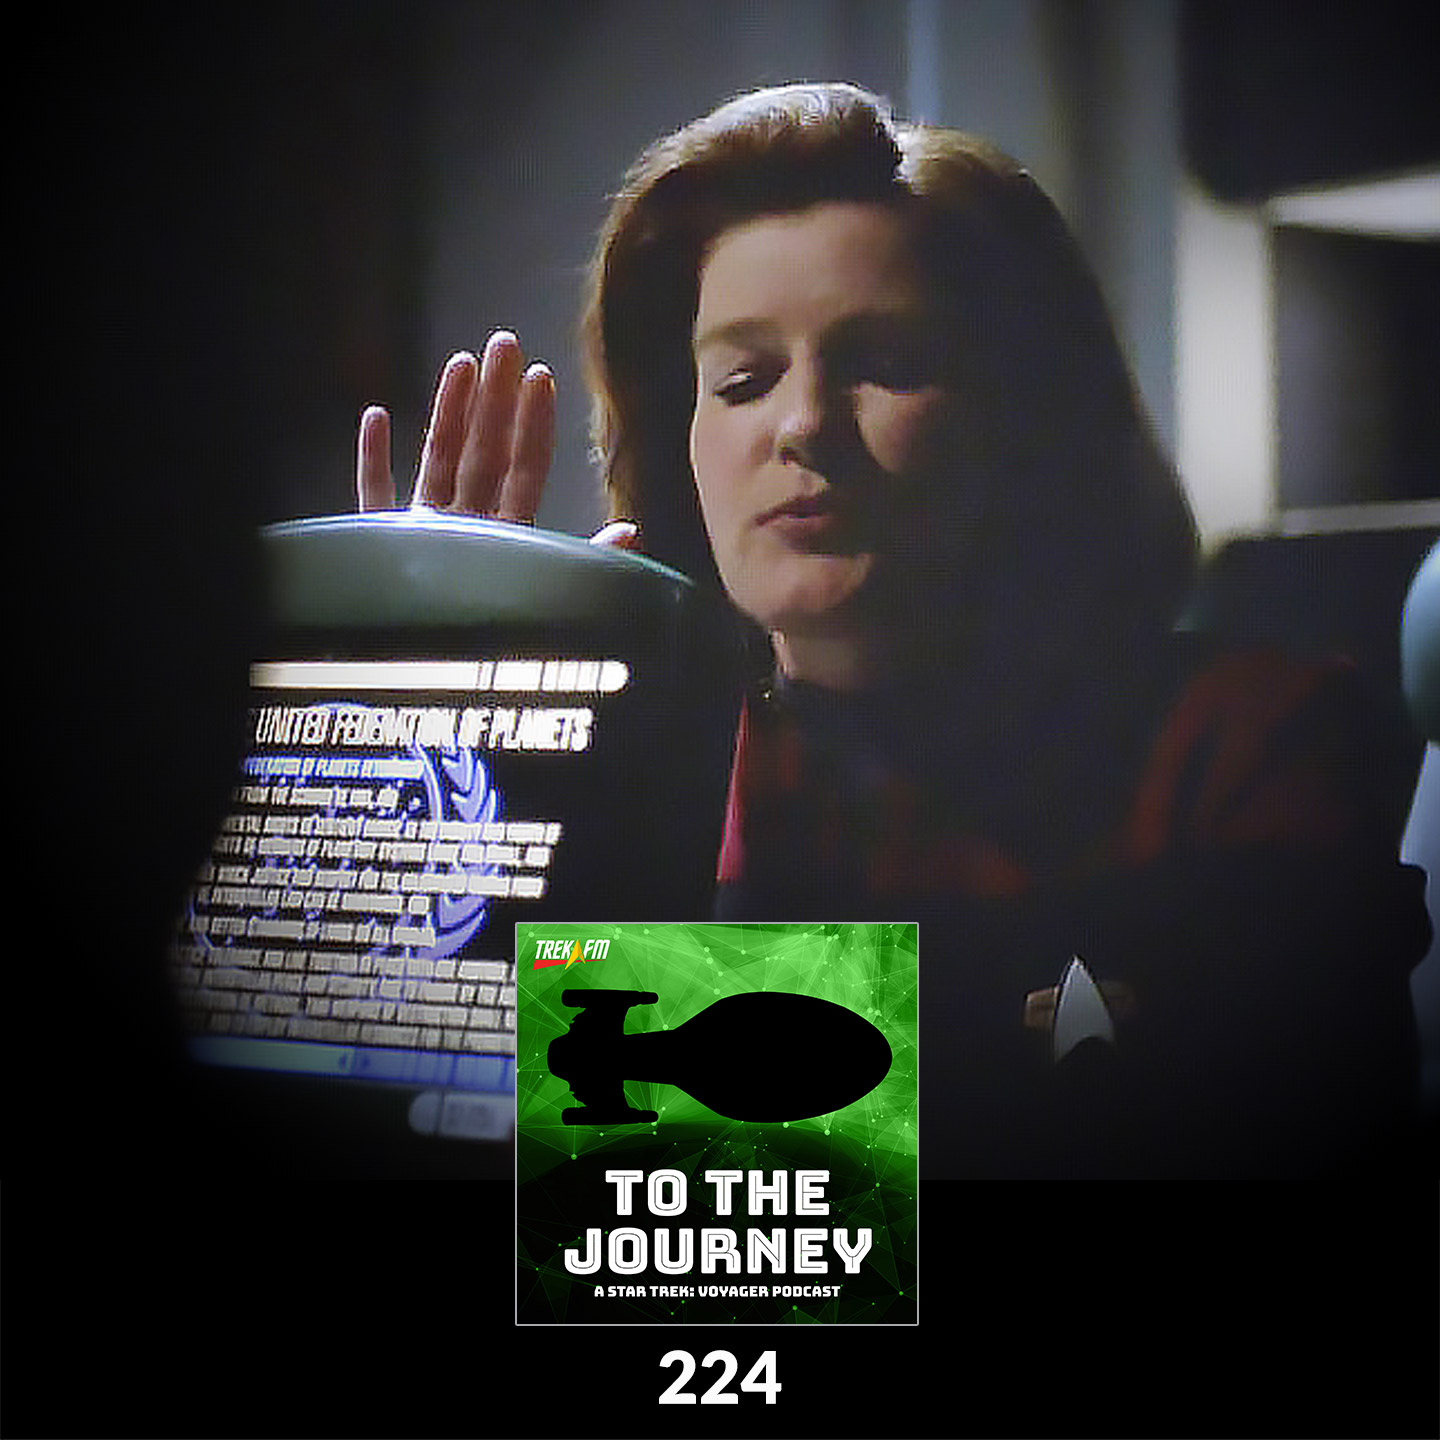 To The Journey 224: The Gospel According to Janeway - The Void.